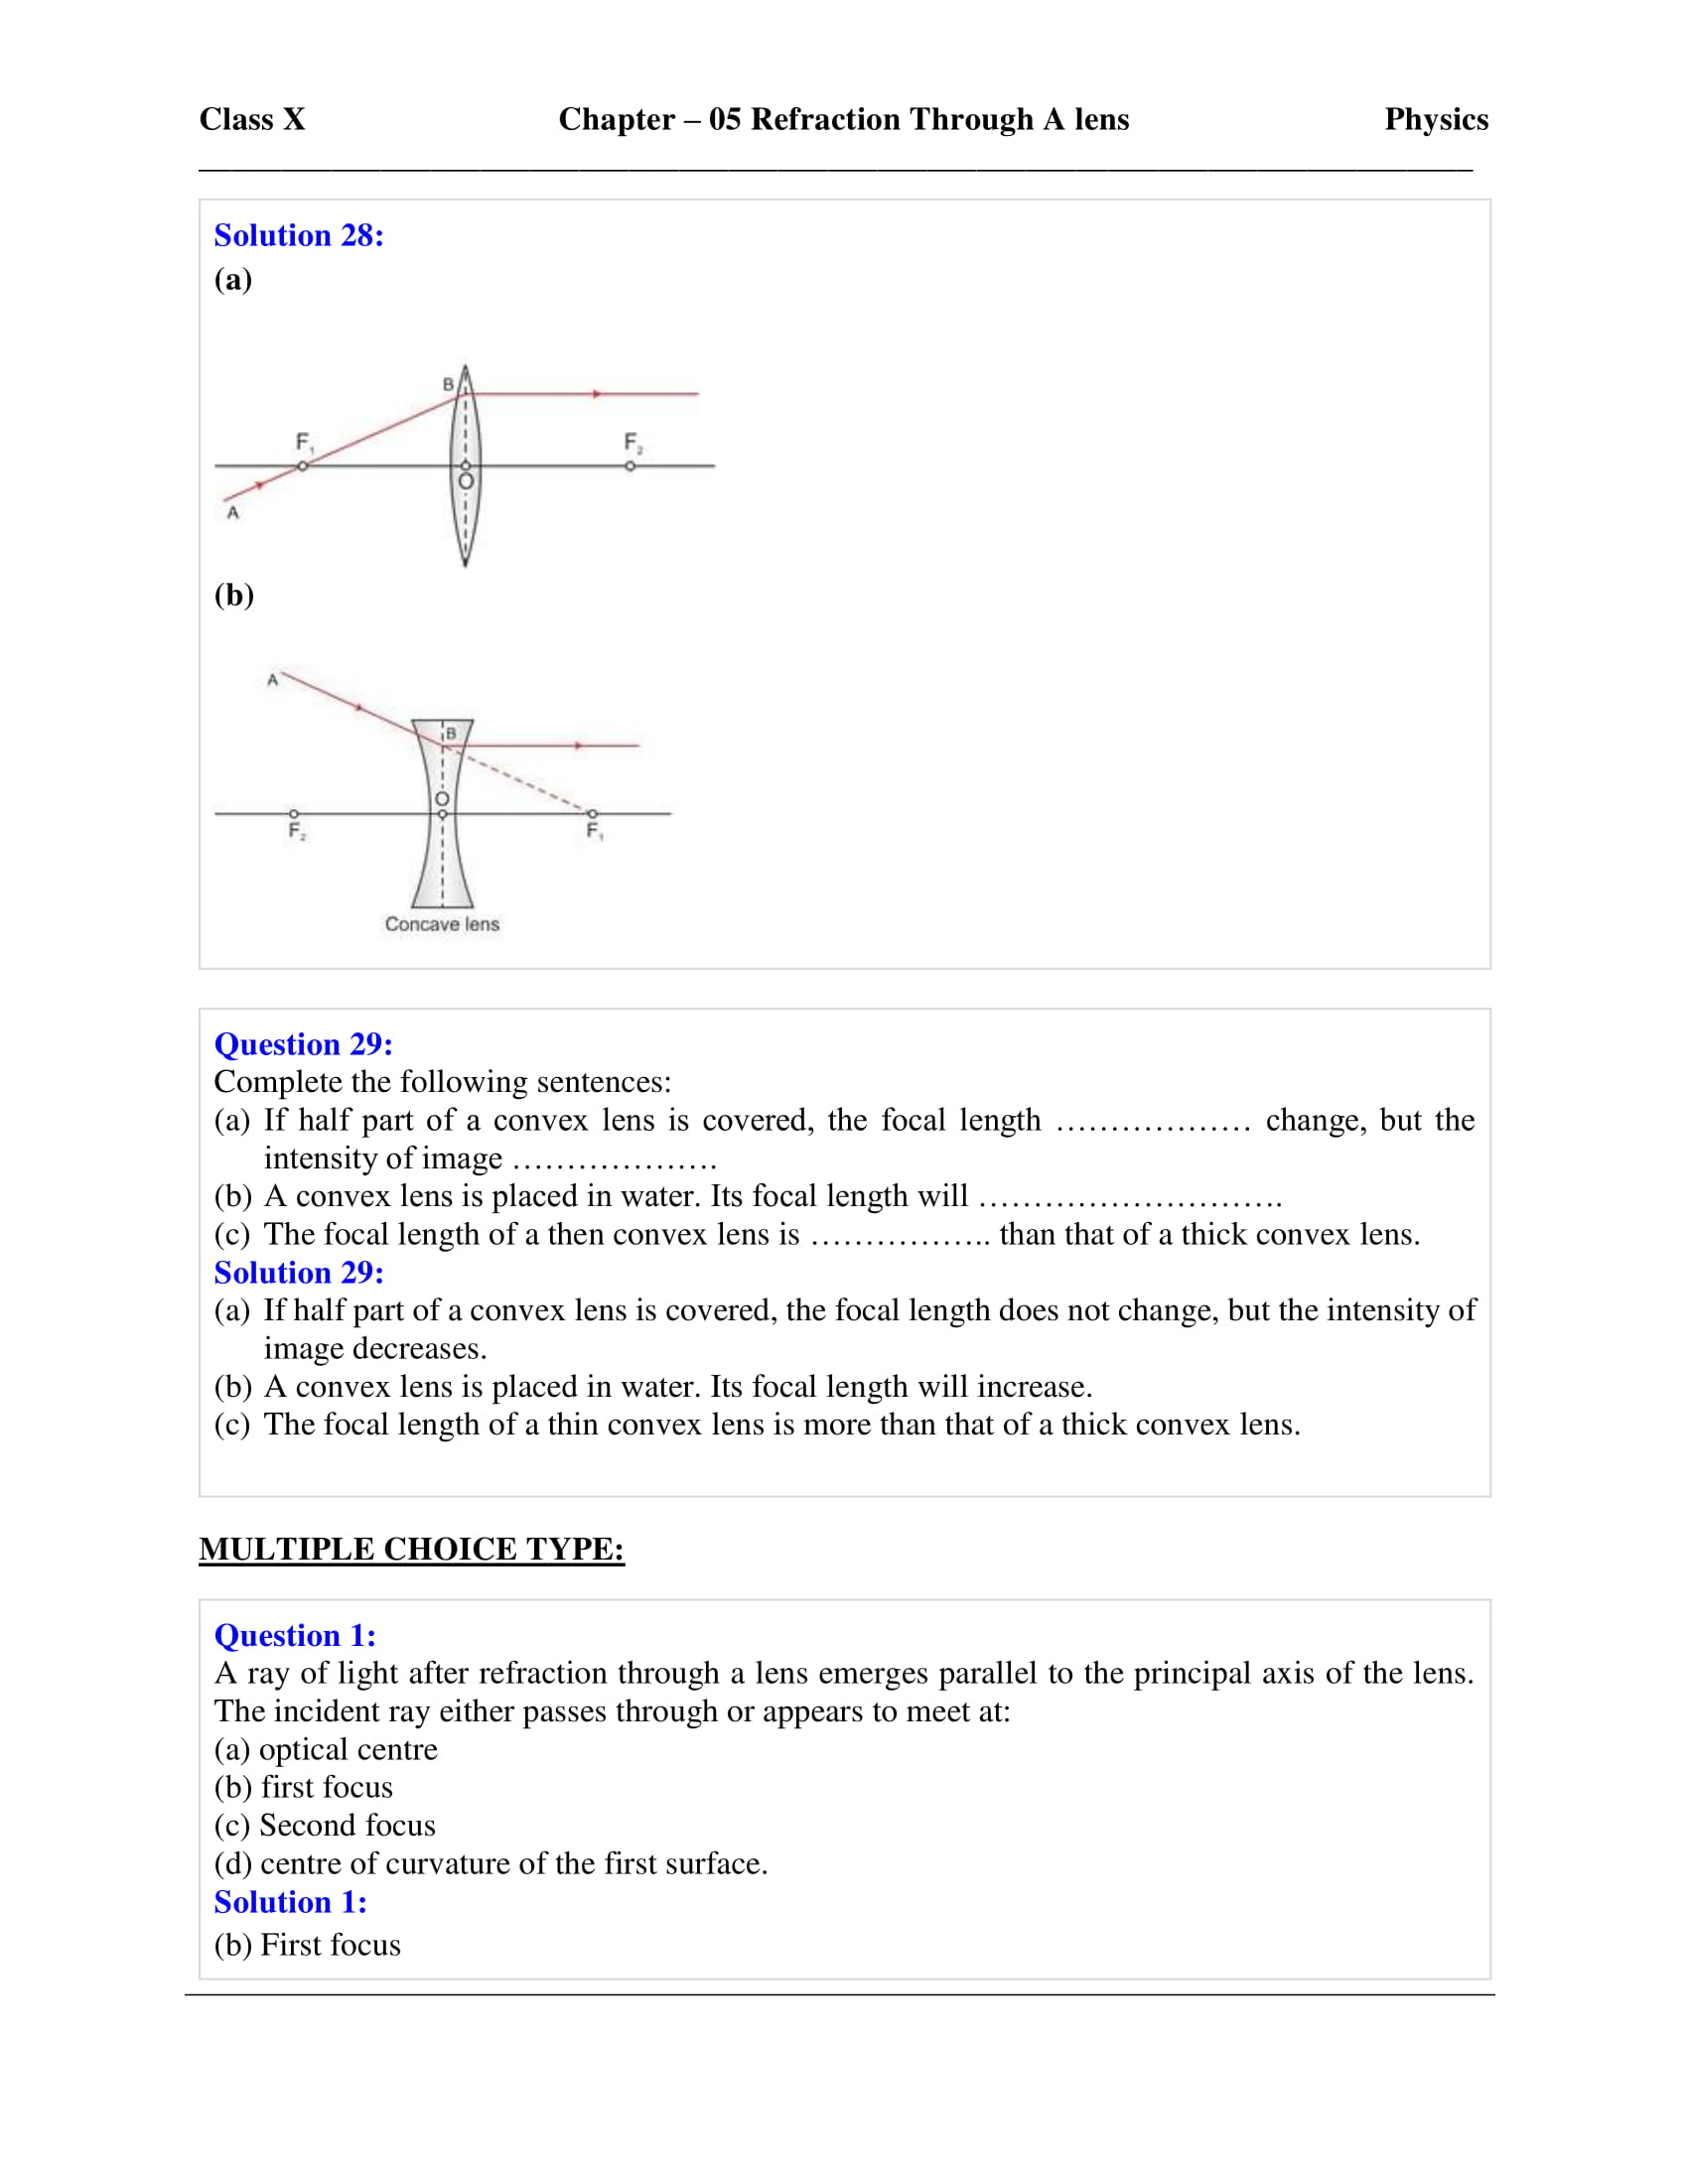 icse-selina-physics-solutions-class-10-chapter-5-refraction-through-a-lens-13